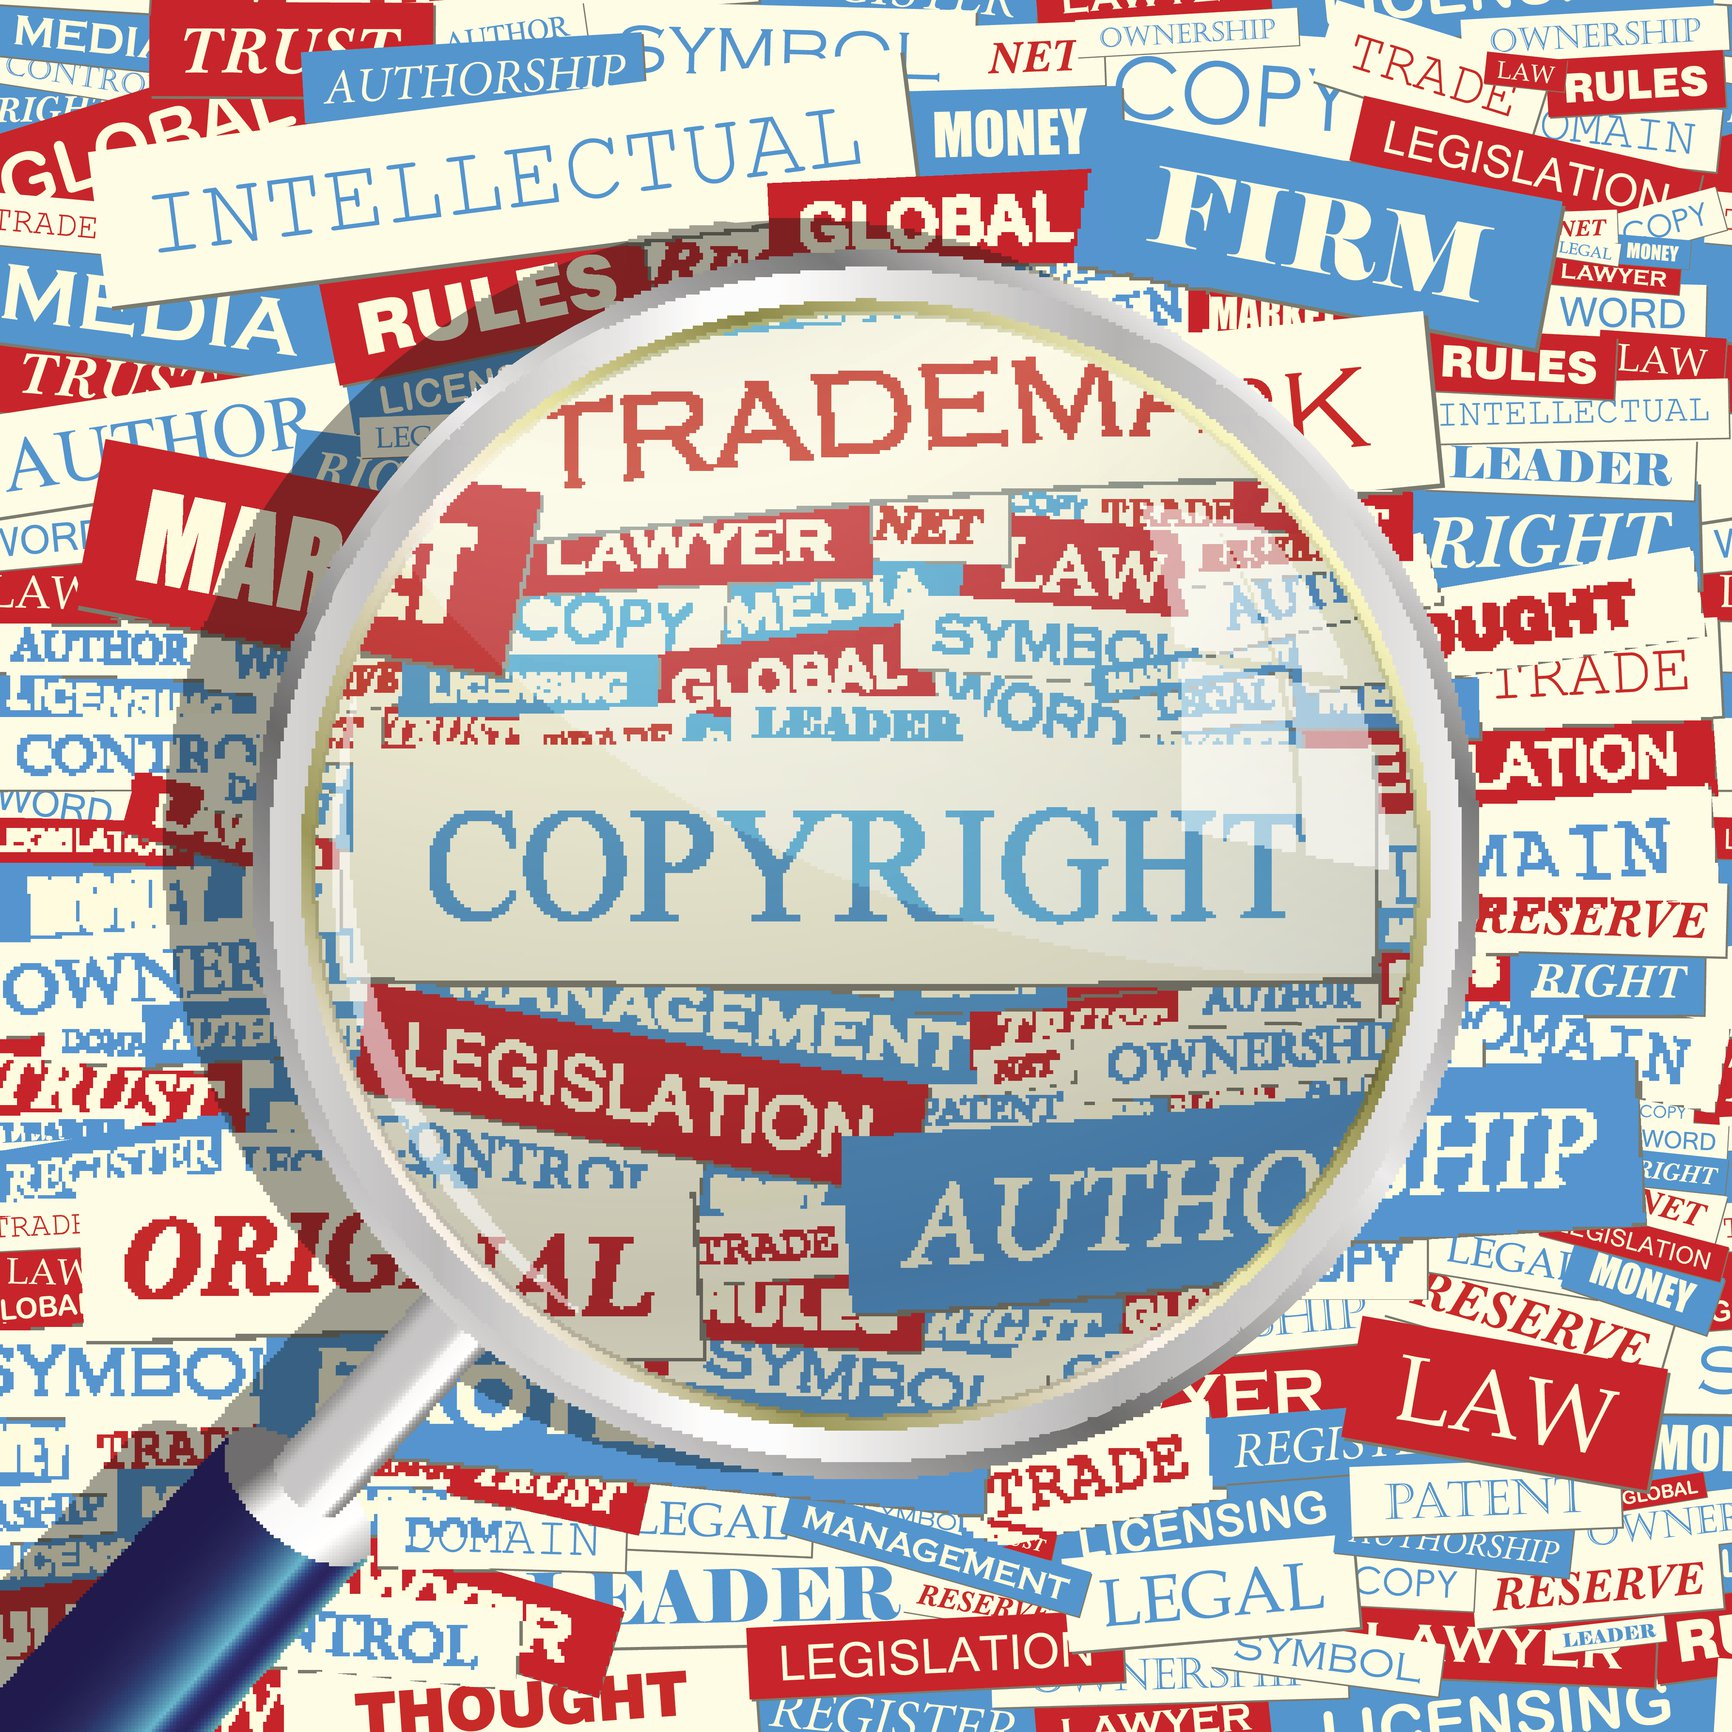 Common Misconceptions That Lead to Copyright Infringement